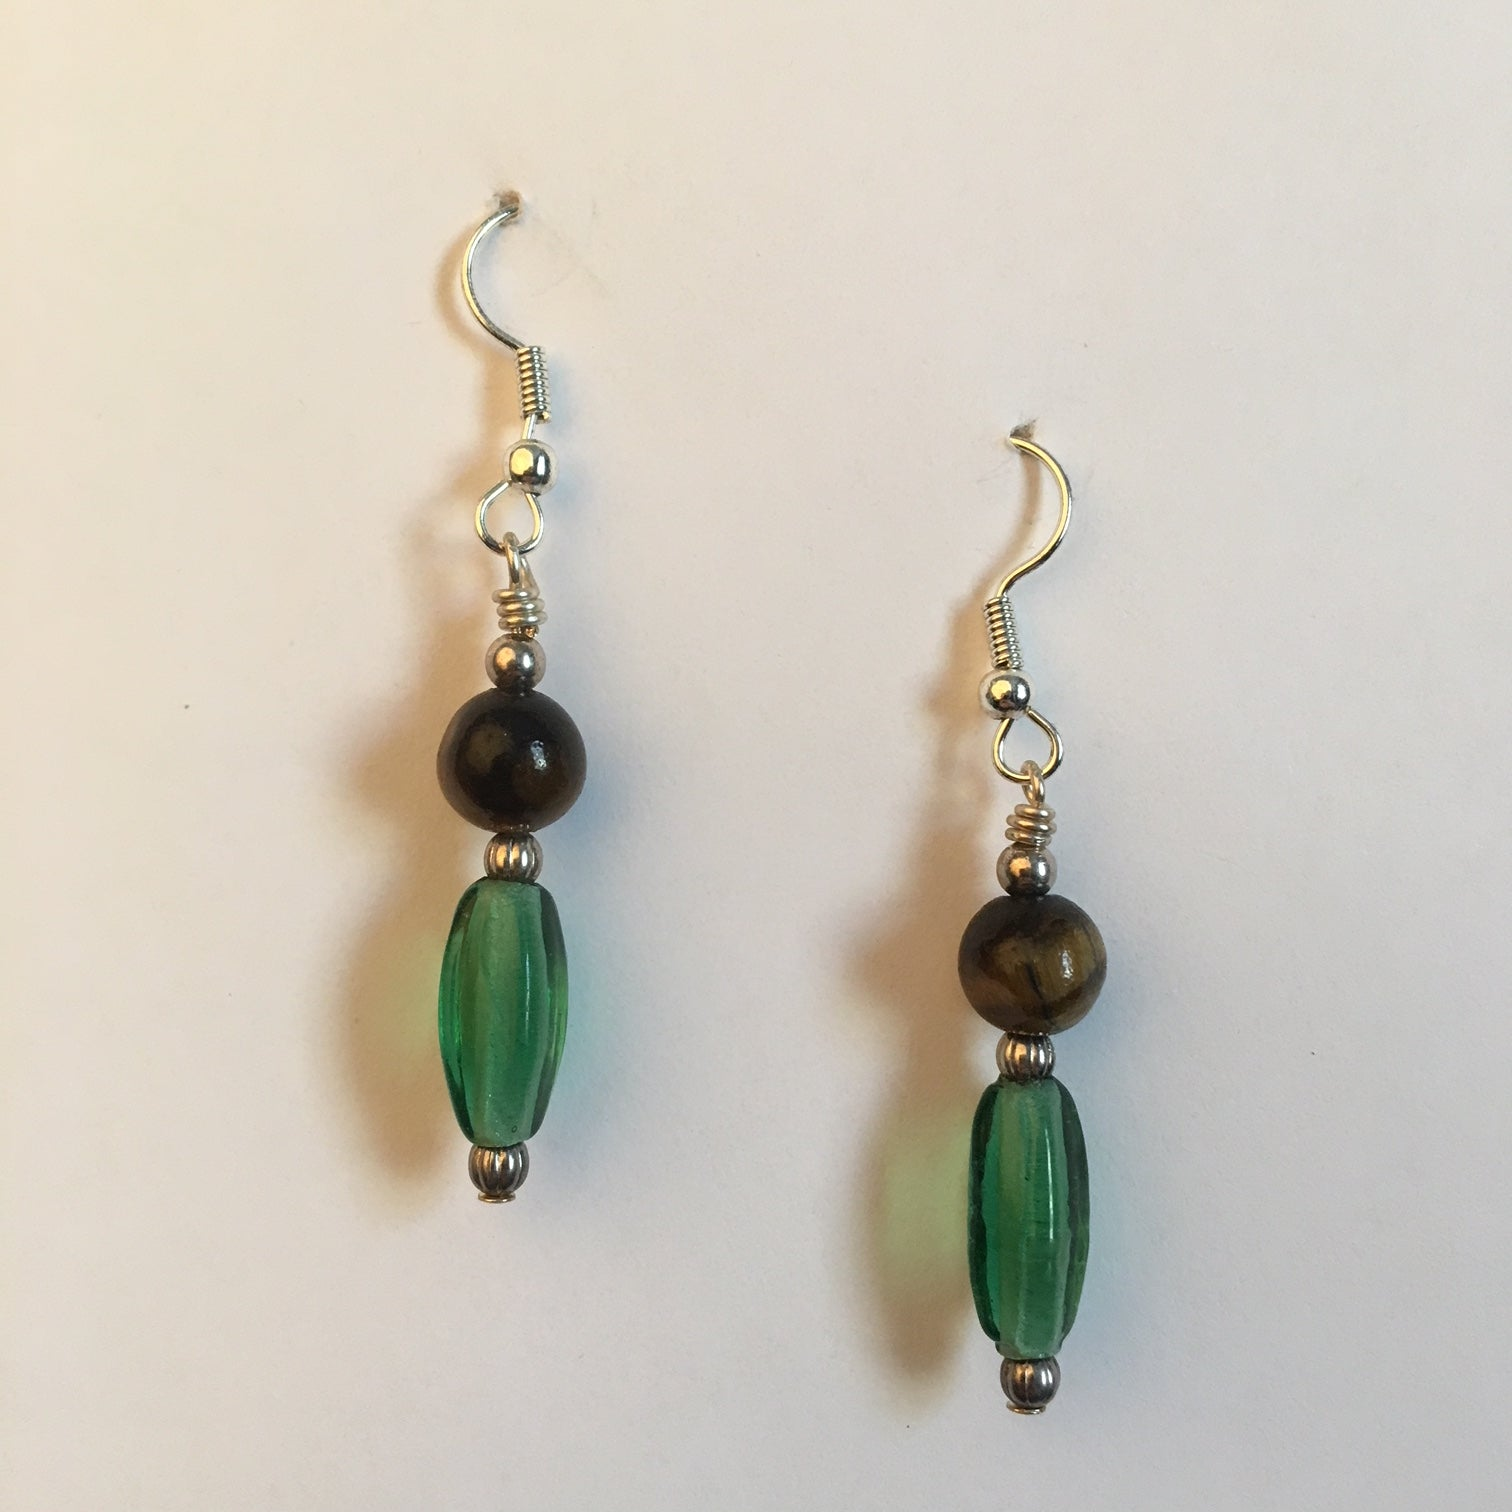 Vintage Beaded Earrings #12